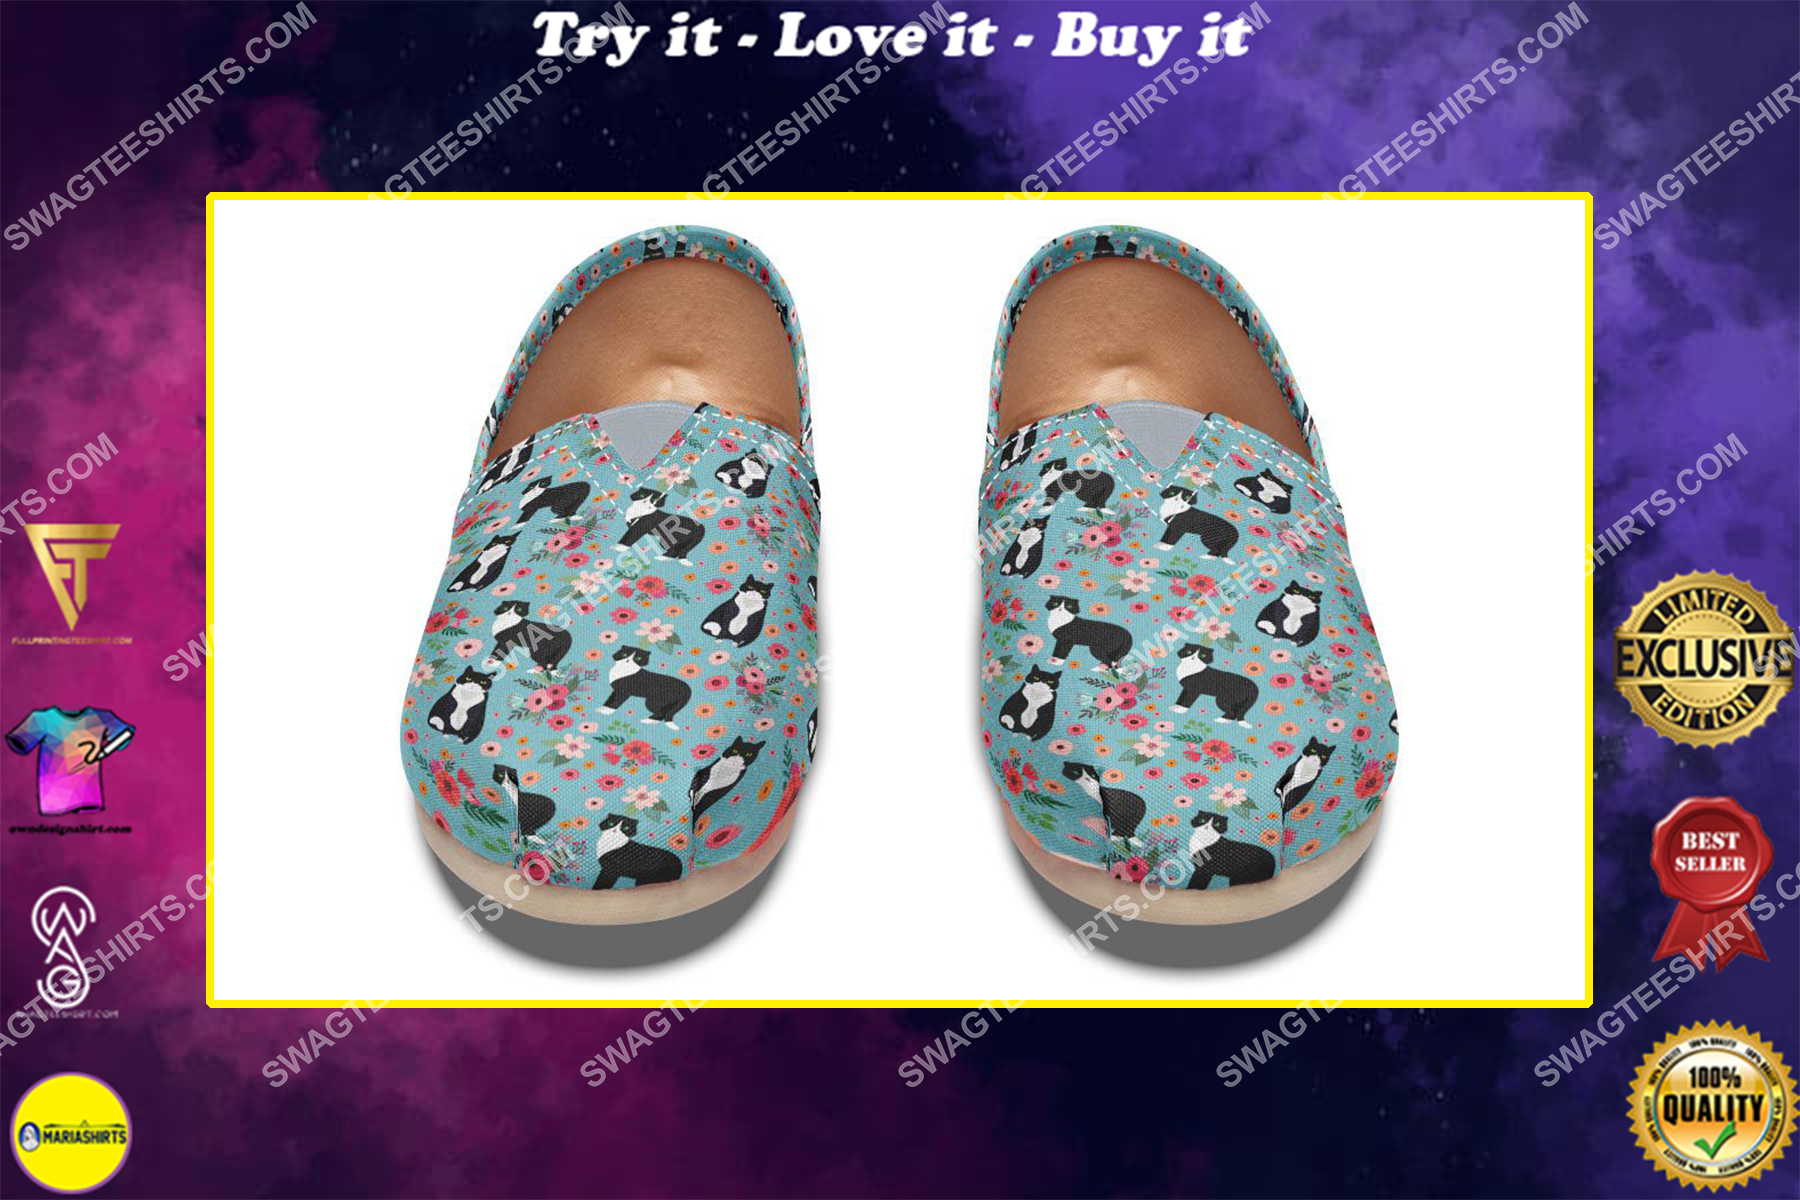 floral black and white cats lover all over printed toms shoes